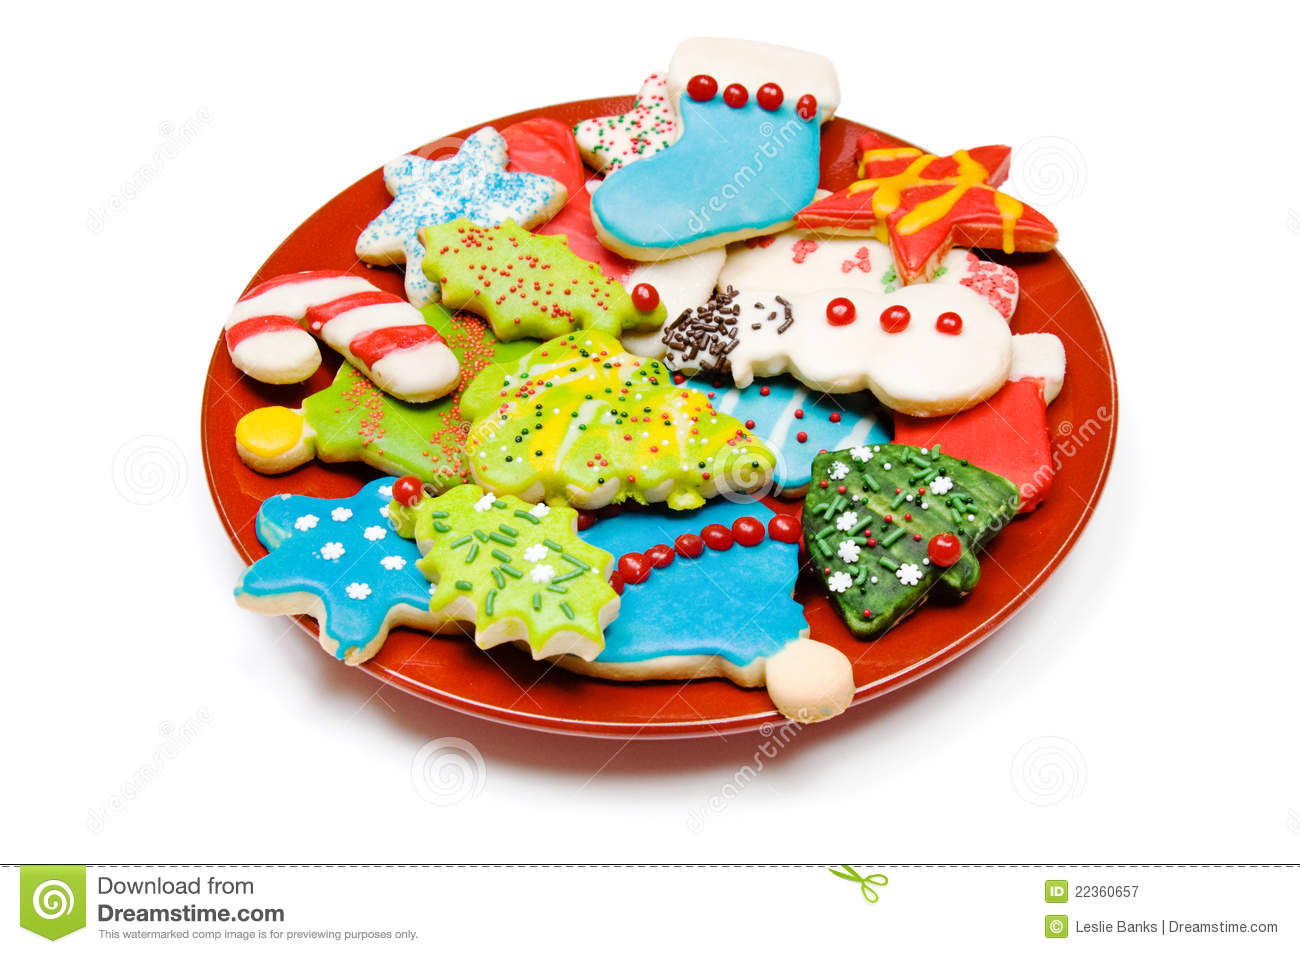 Plate Of Iced Christmas Cookies On White Royalty Free Stock ...